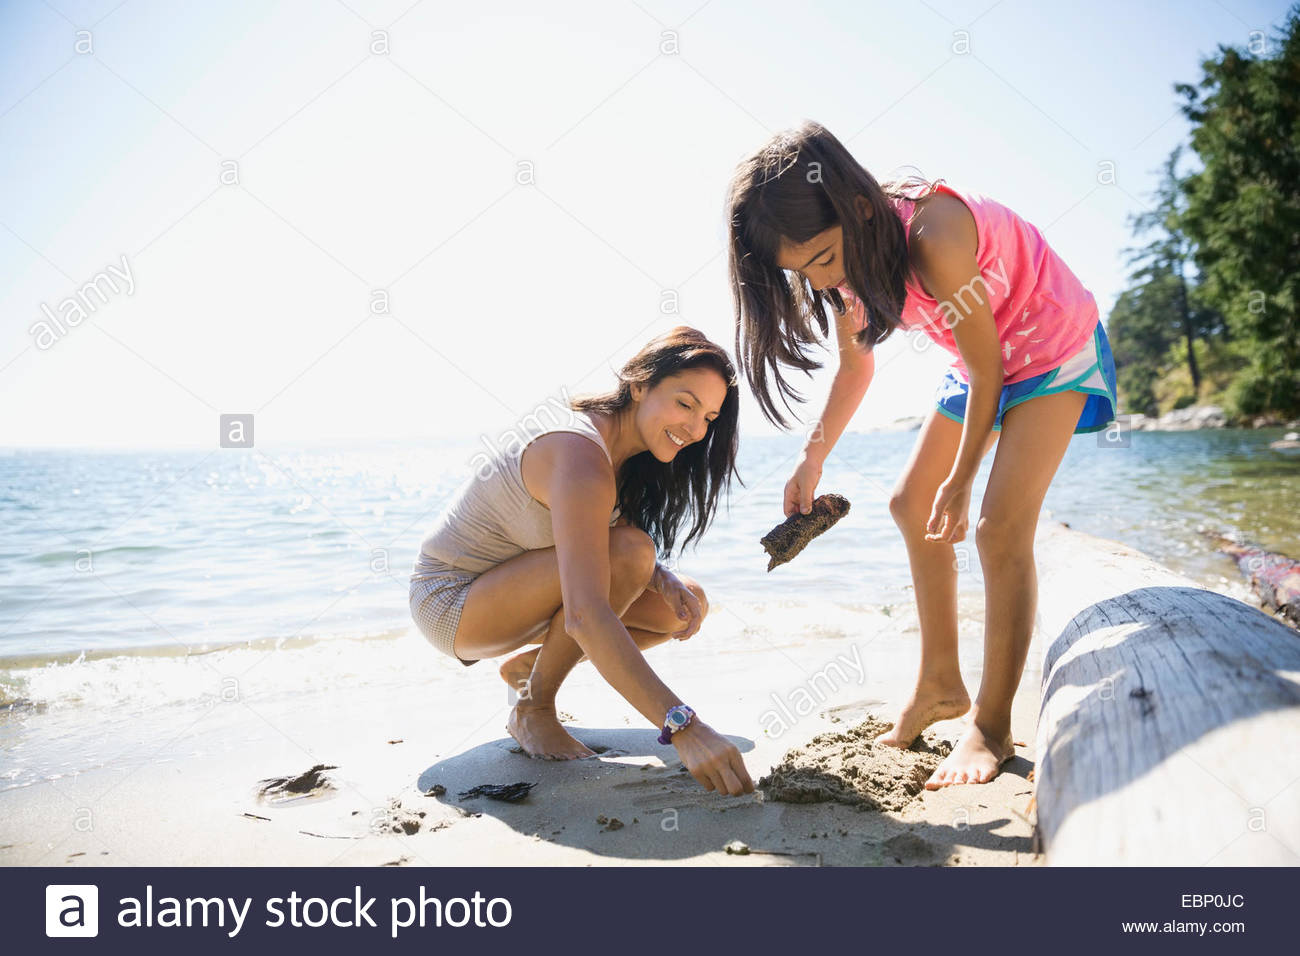 Mother and daughter clam digging on sunny beach - Stock Image